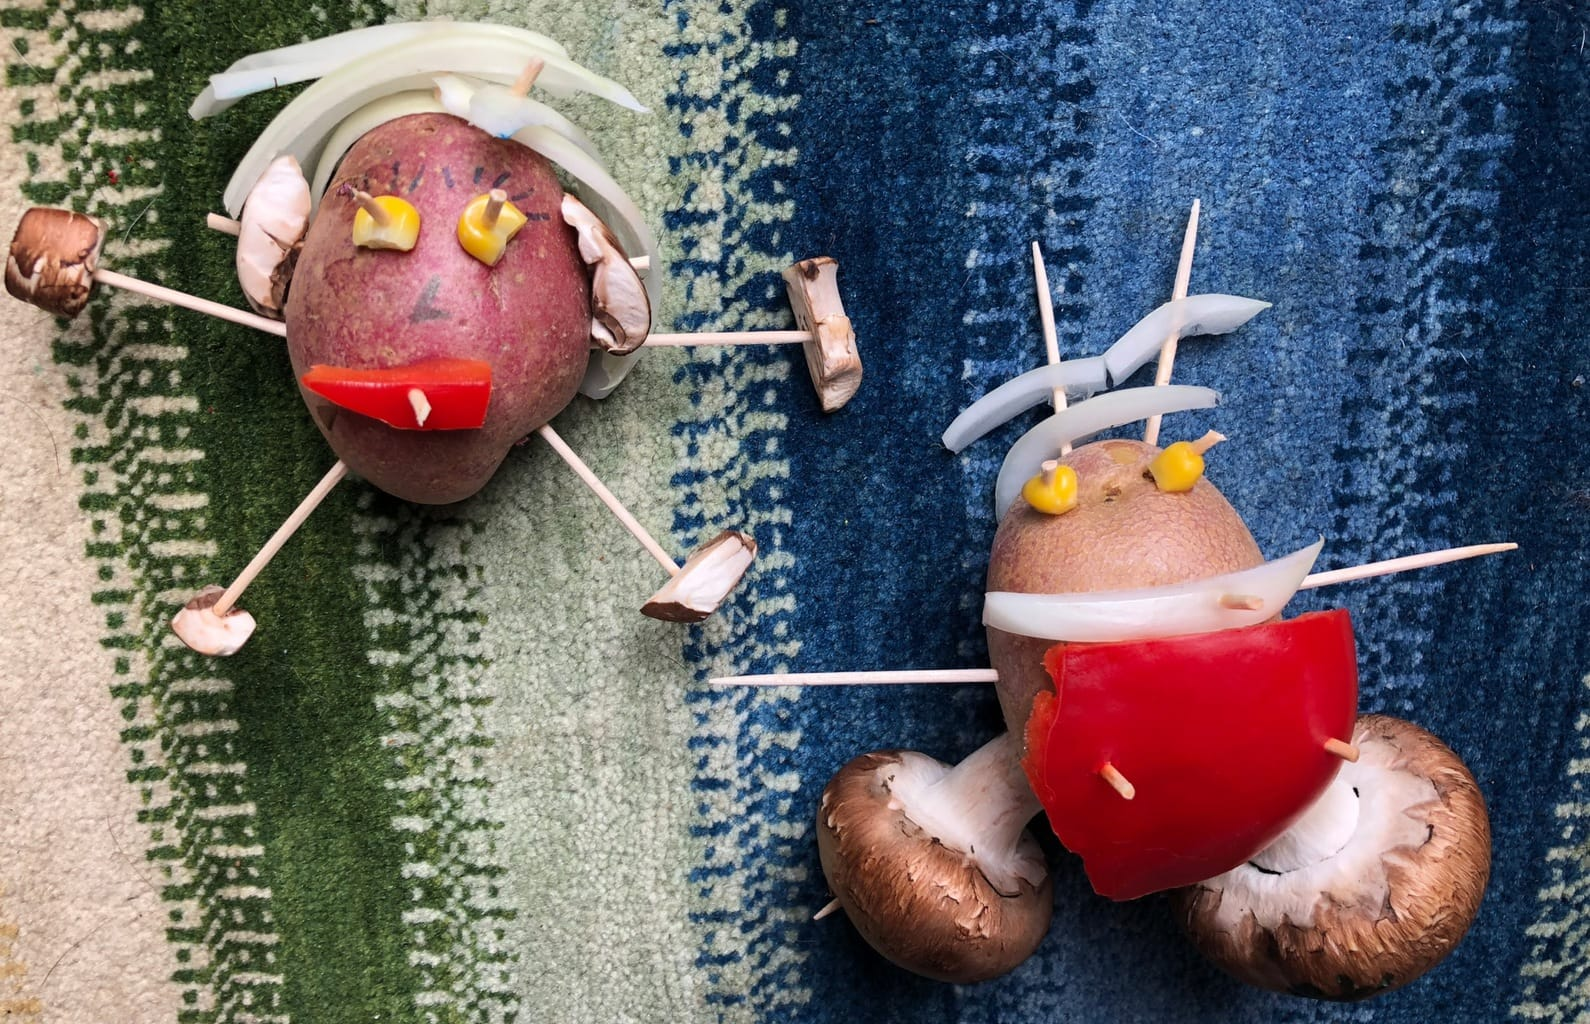 2 potatoes dressed as people using toothpicks, onions and peppers